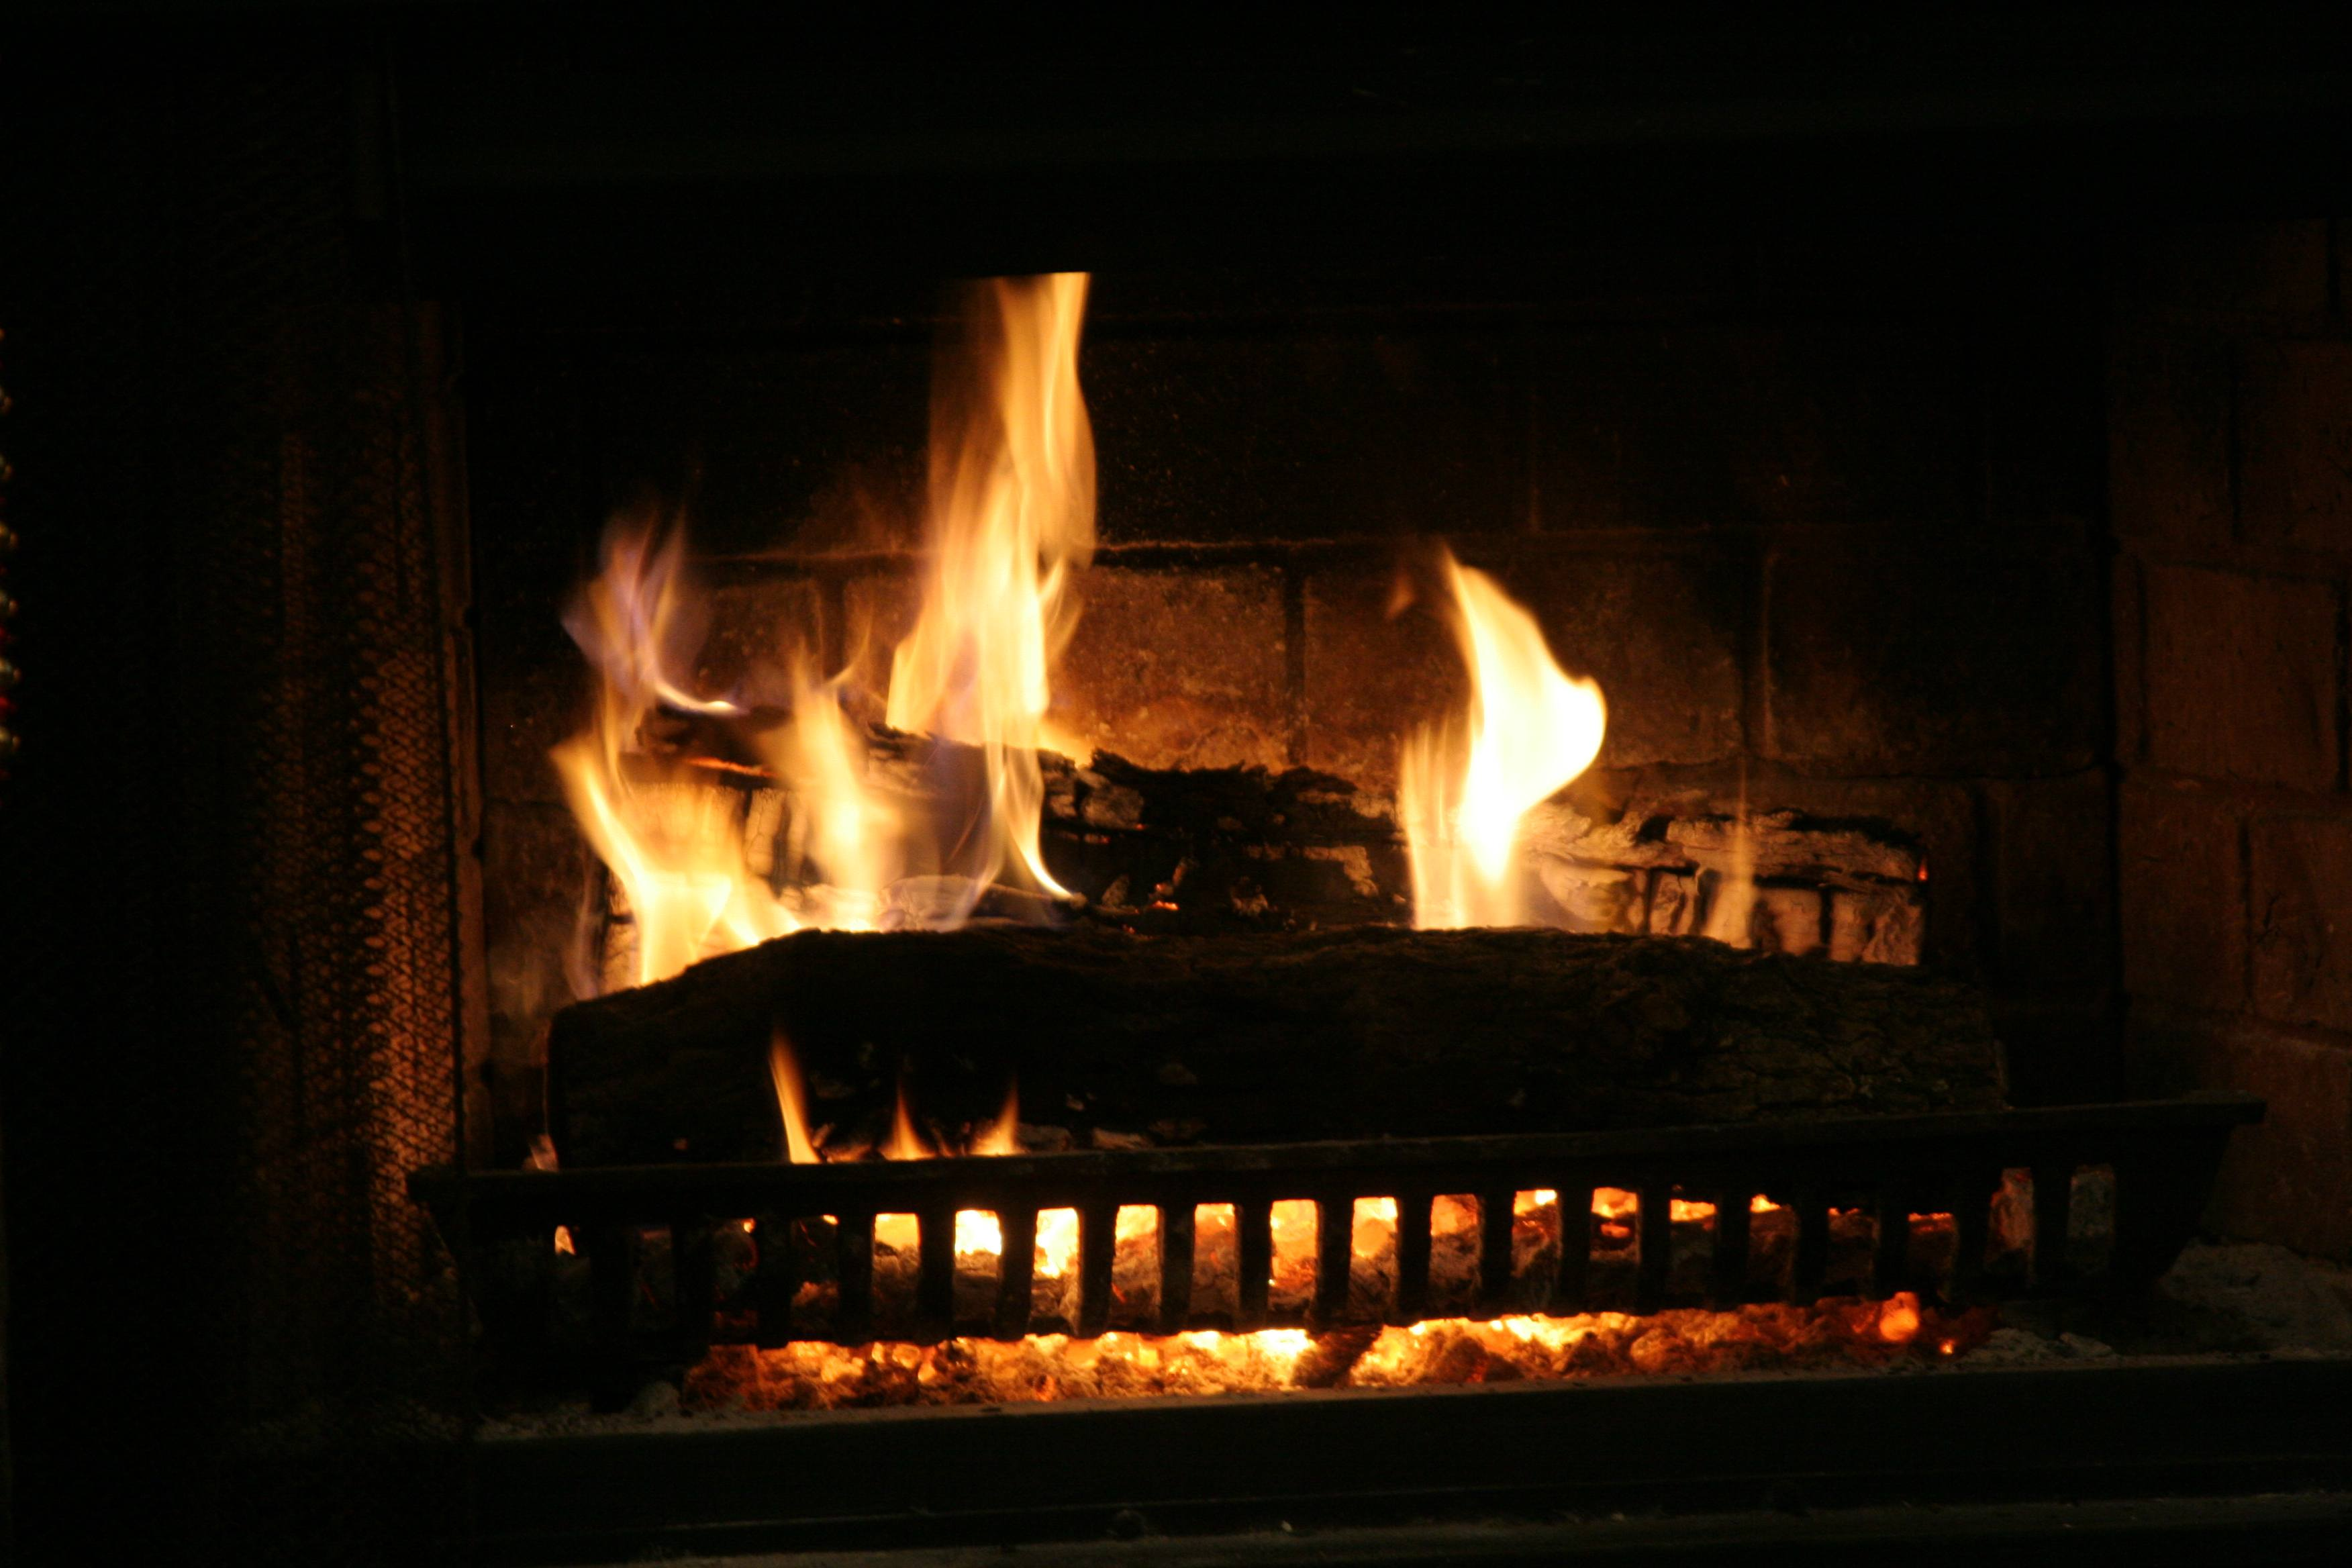 Fireplace Sounds These Ambient Sounds Wash Away Your Distraction And Free Your Mind